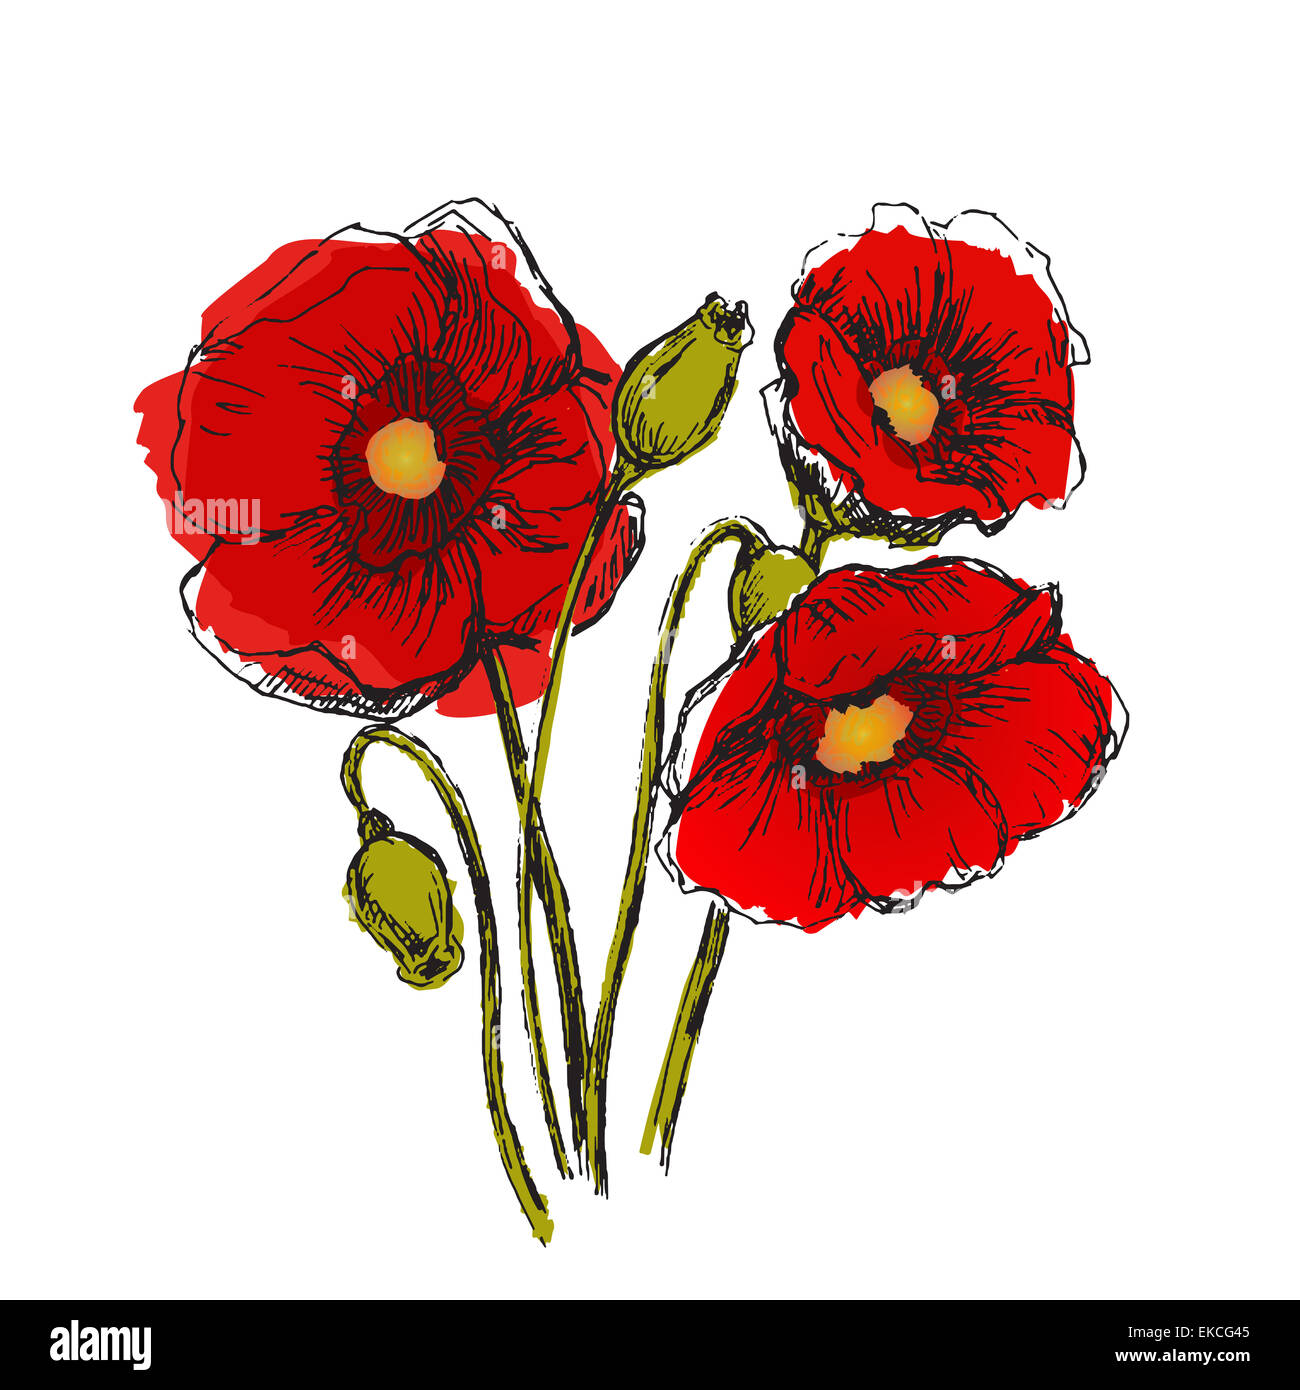 Flowers set color. Sketch converted to vectors. - Stock Image